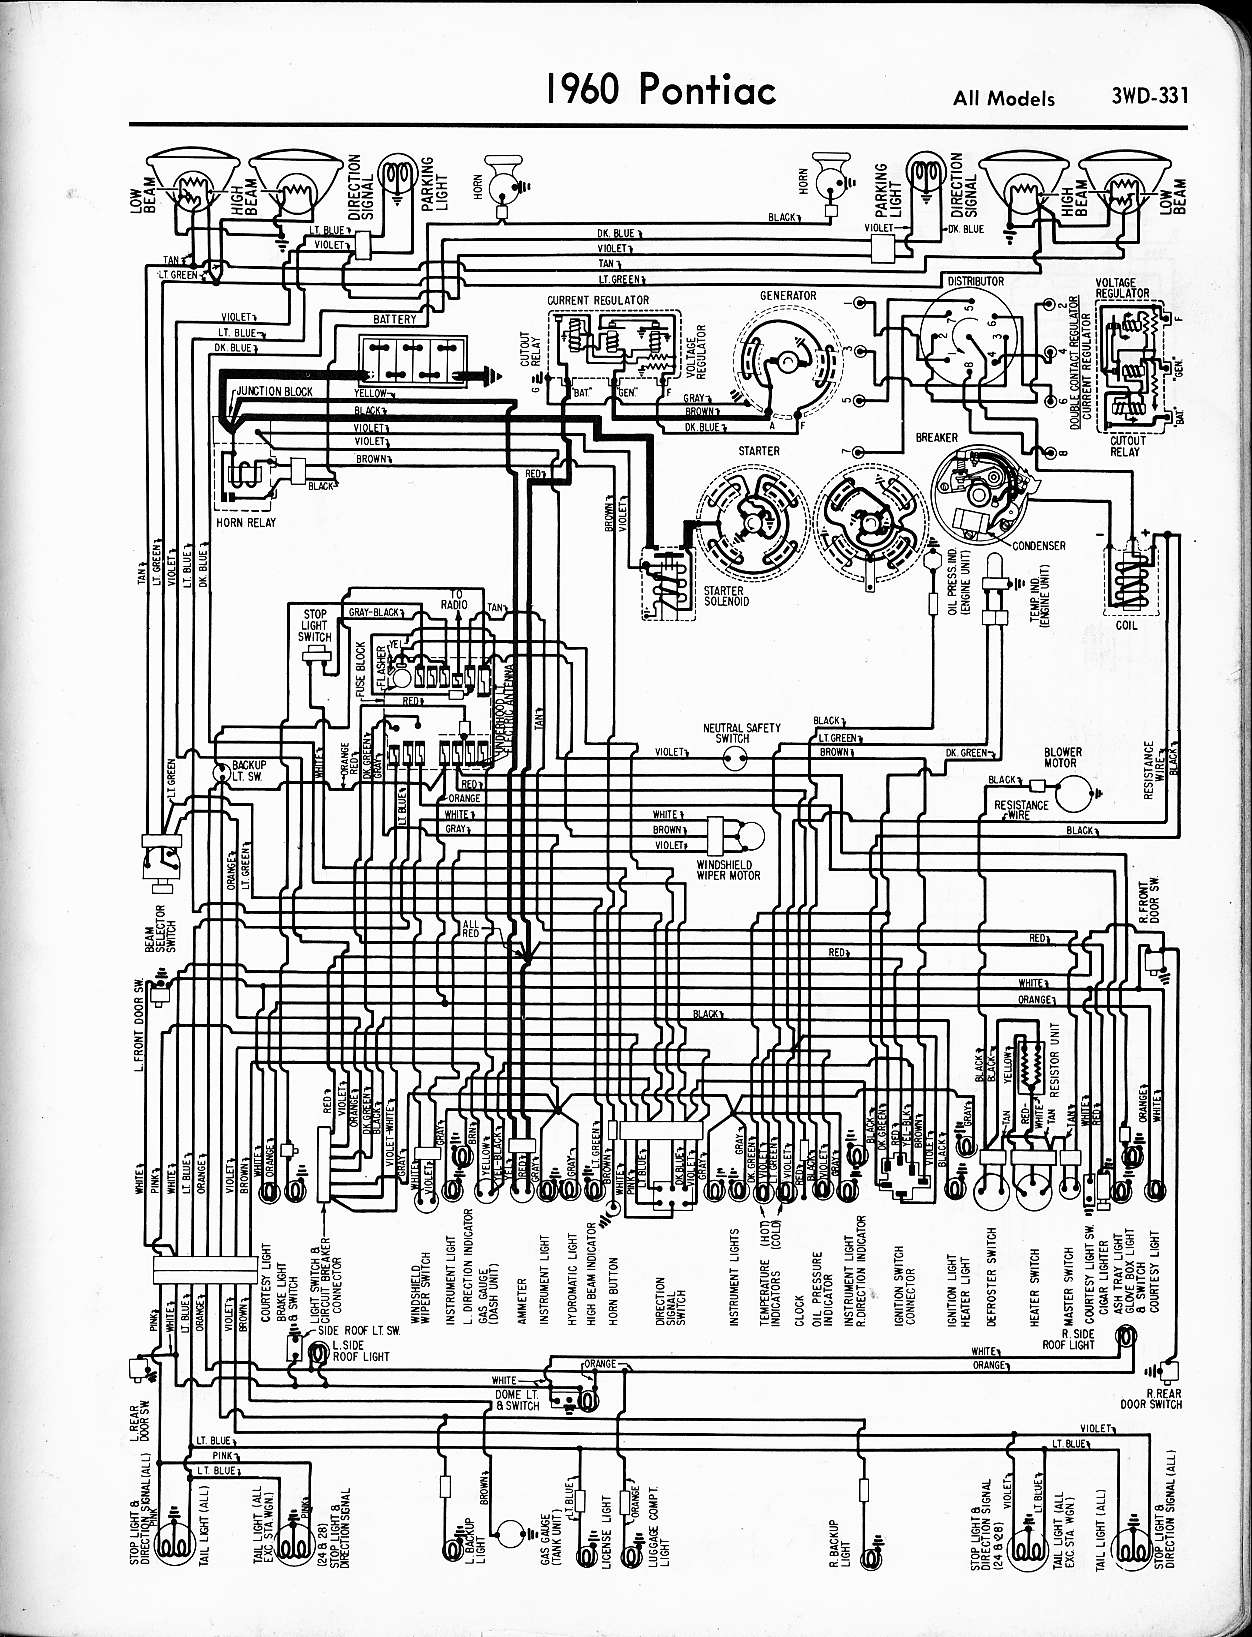 1957 Pontiac Wiring Diagram Change Your Idea With 72 El Camino For 1965 Rh Oldcarmanualproject Com 1972 Star Chief